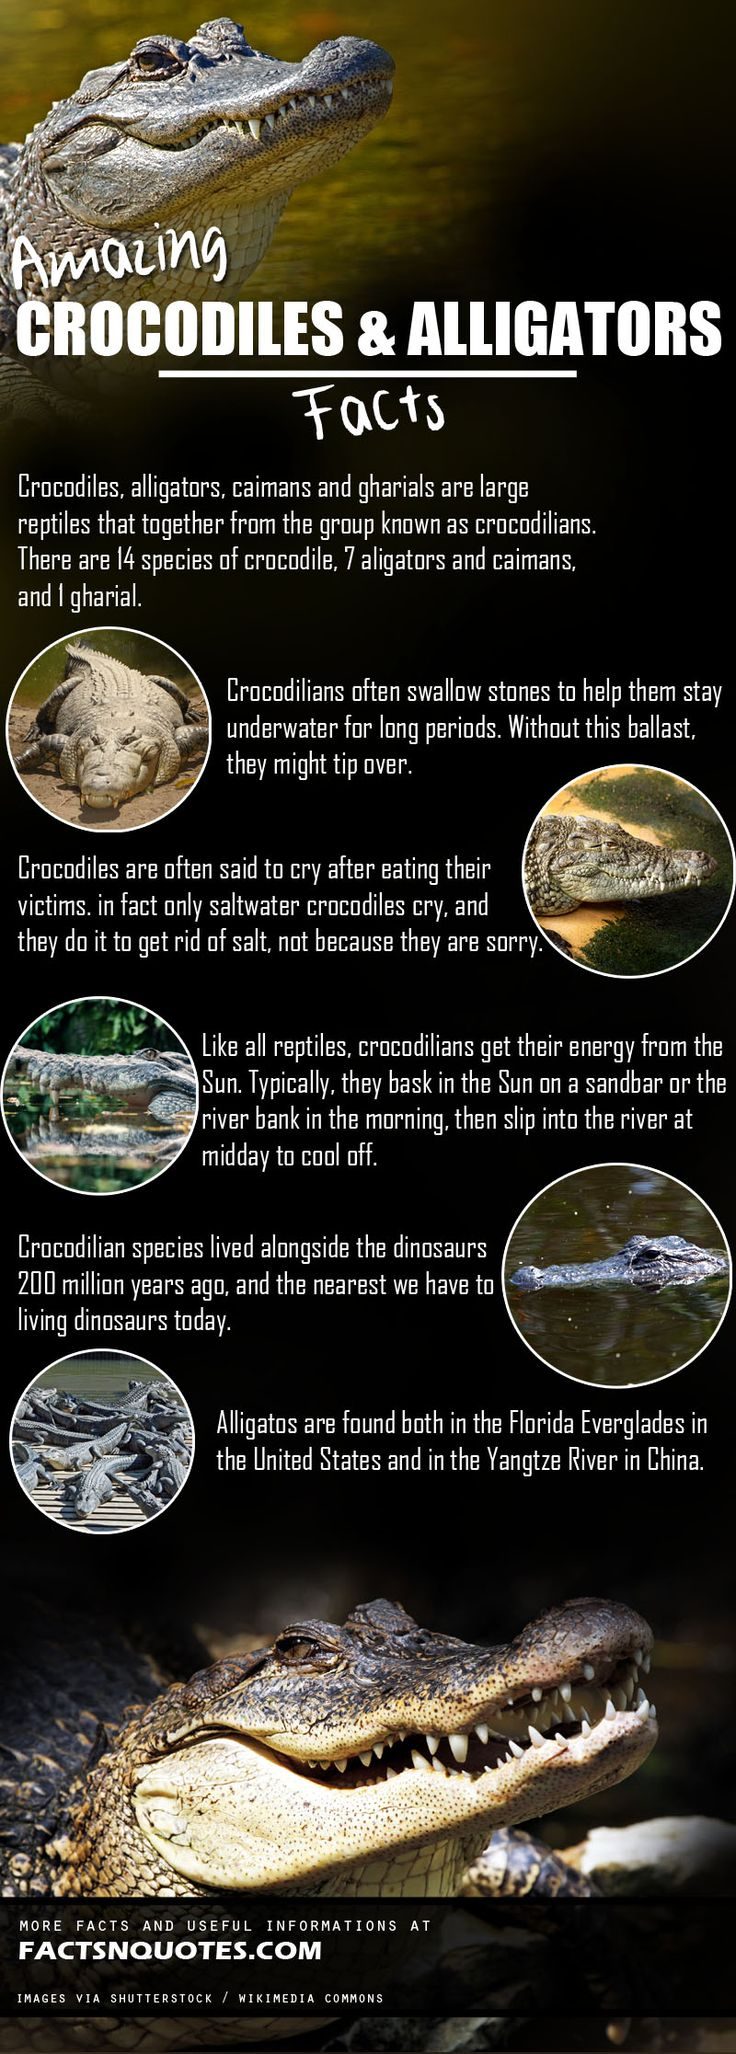 Amazing Crocodiles and Alligators Facts You should Know!